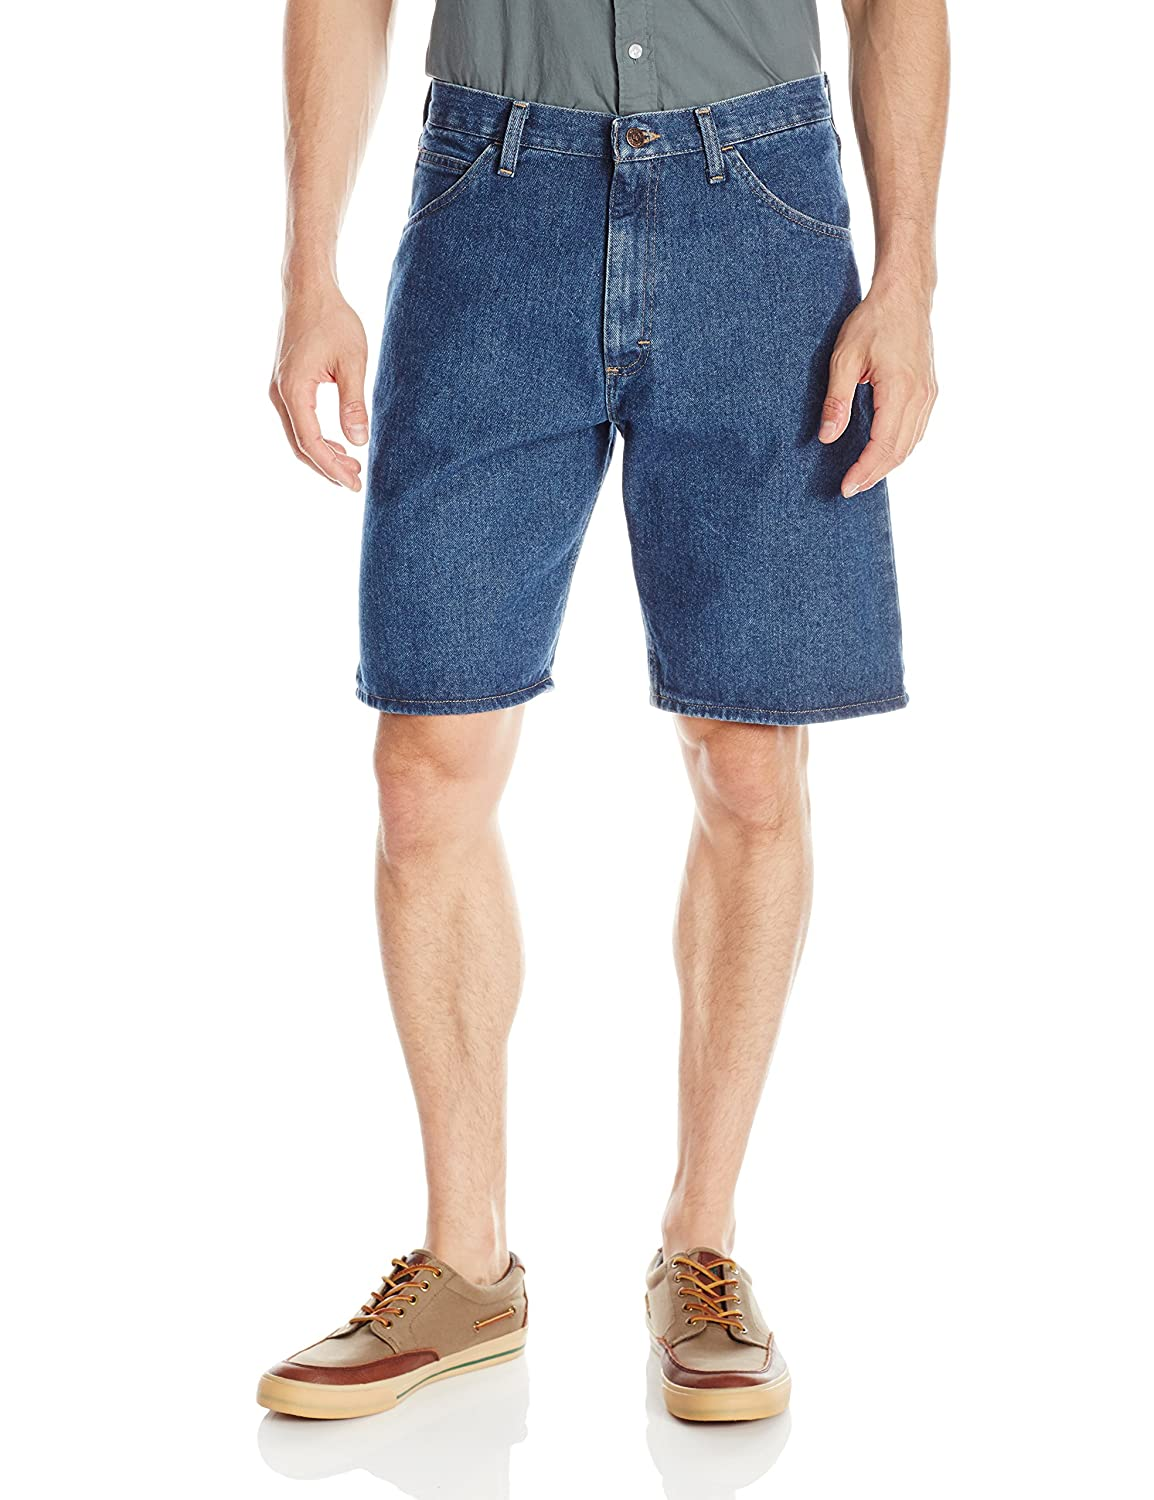 Wrangler Mens Classic Relaxed Fit Five Pocket Jean Short